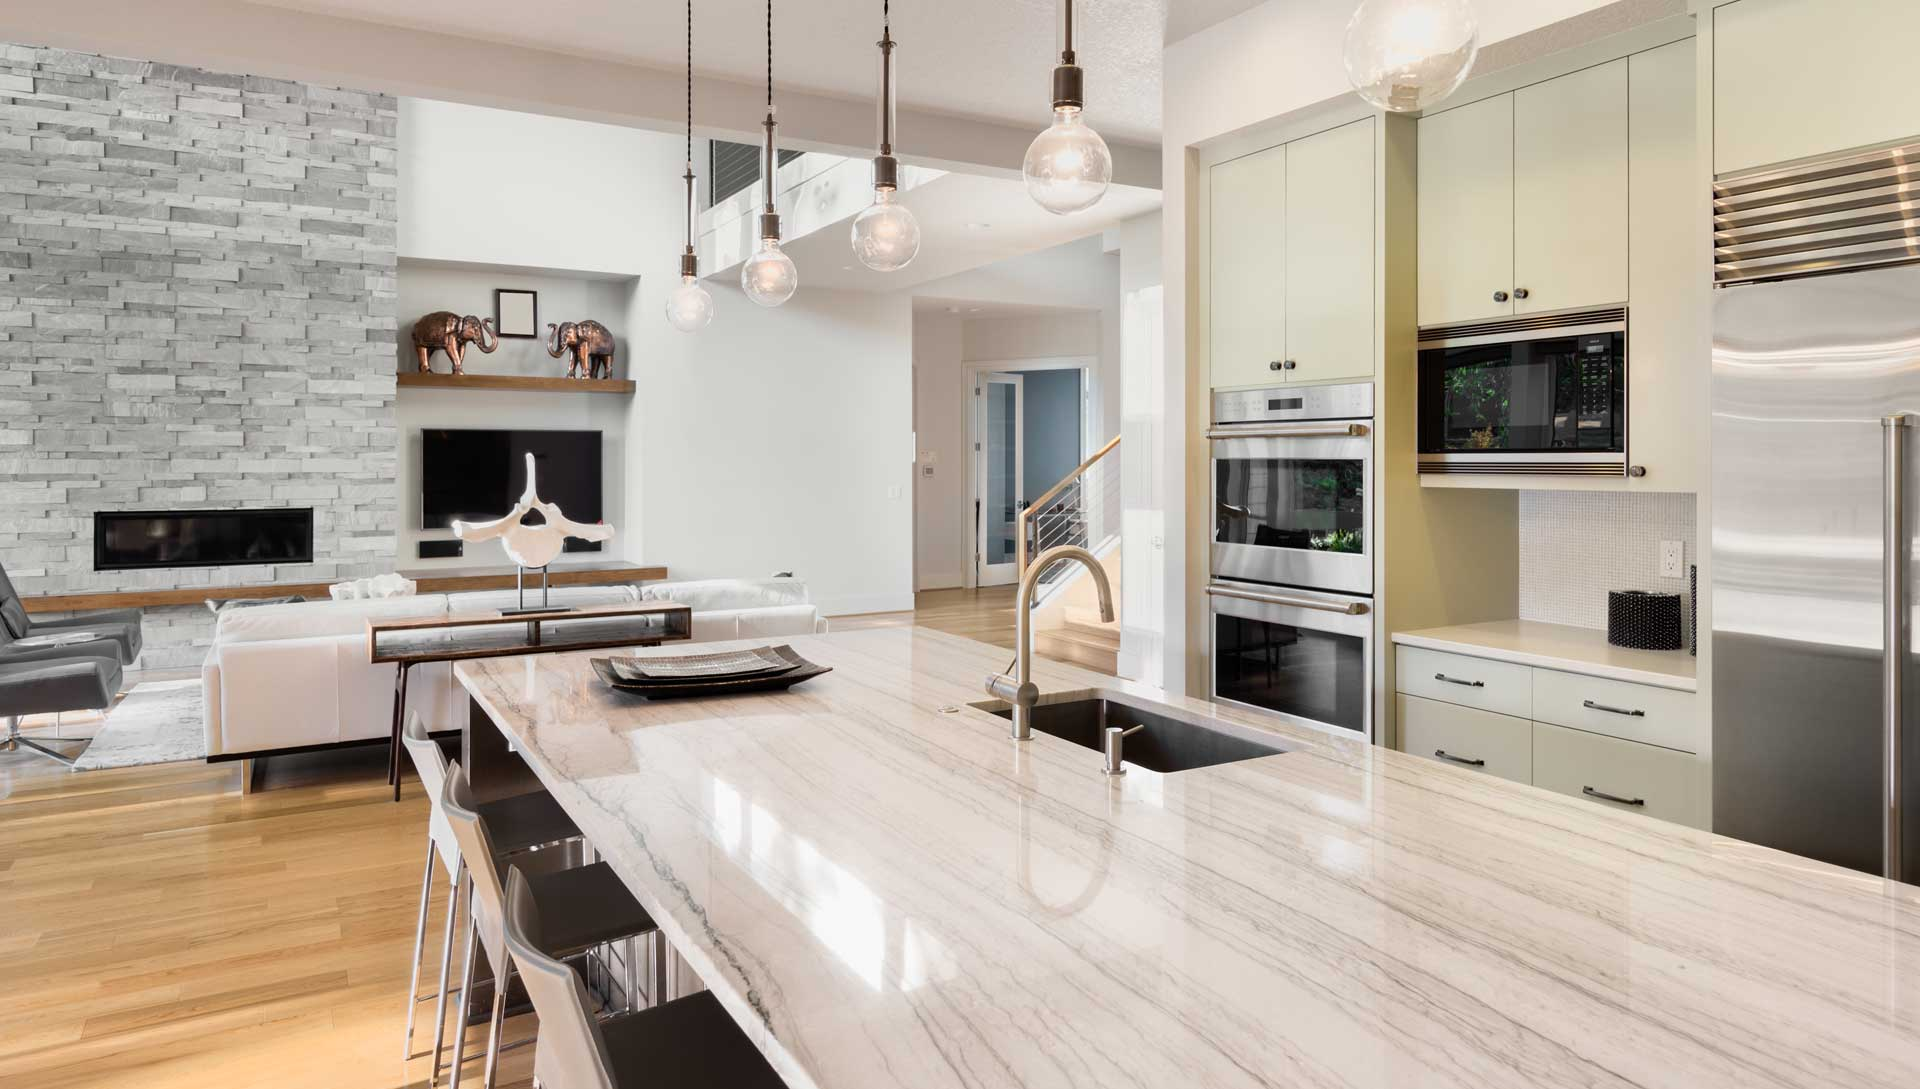 CACEDONIA WHITE MARBLE